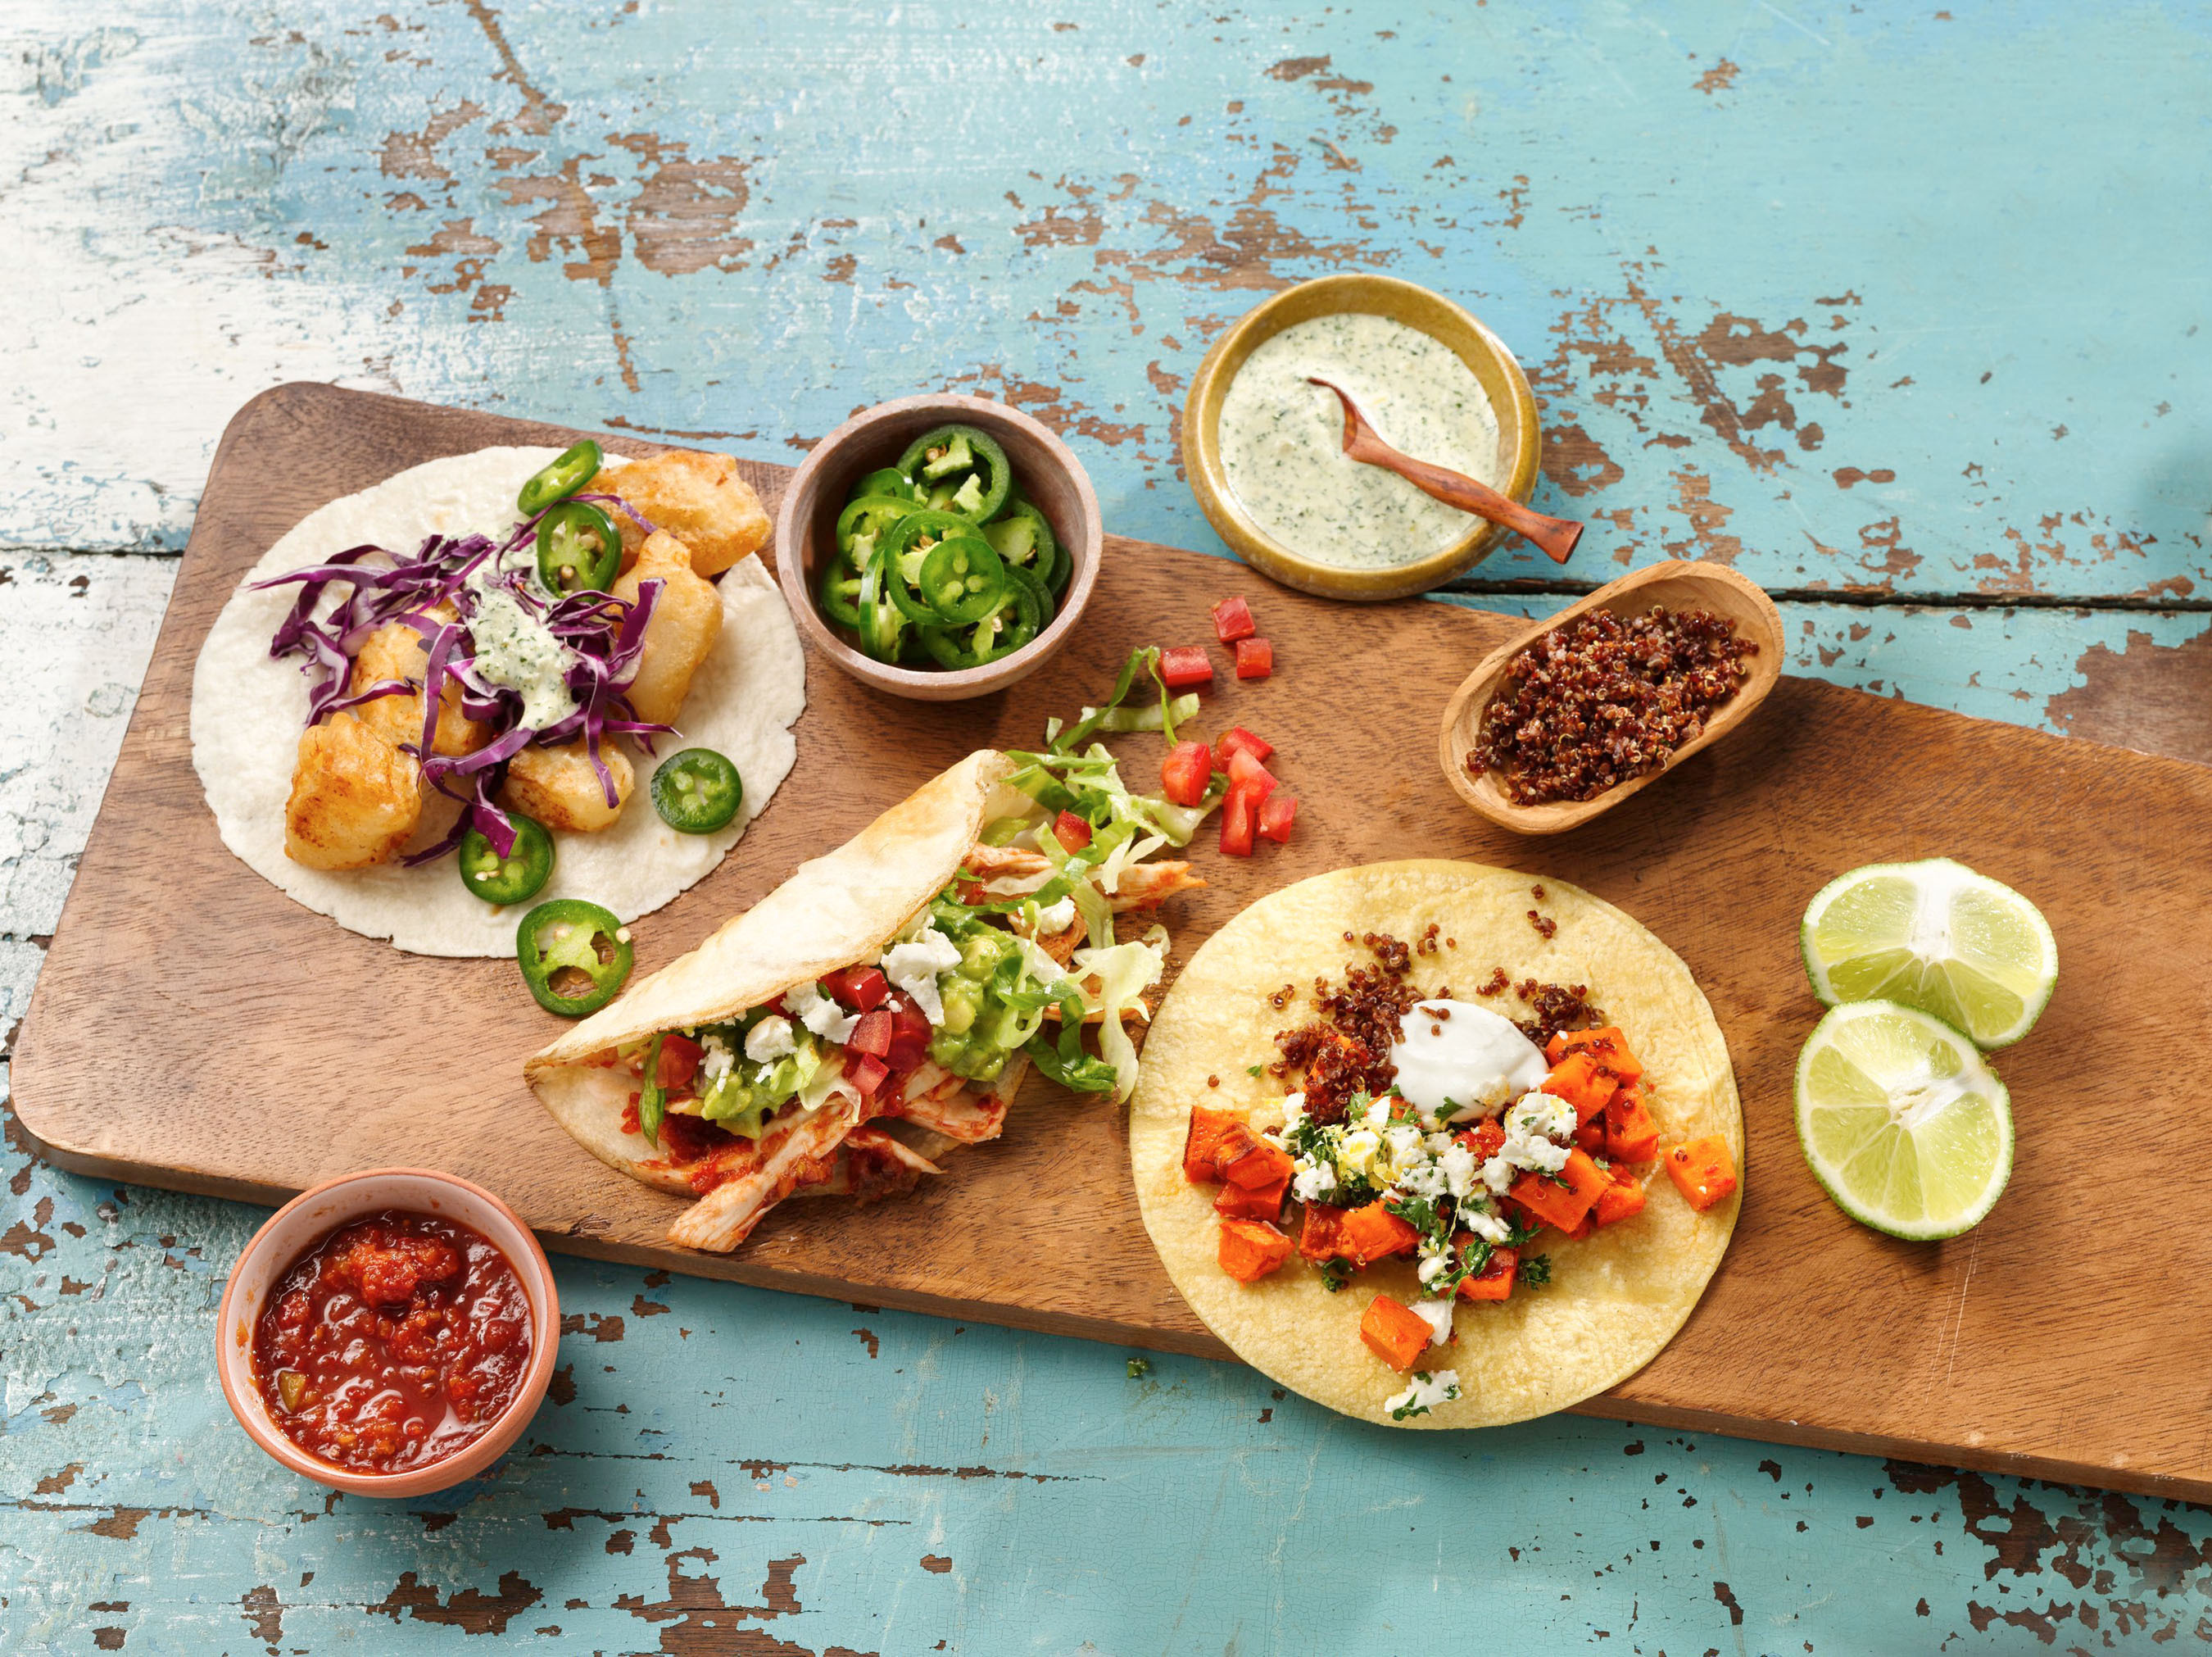 All across the country, chefs and home cooks alike are reinventing the taco with global flavors and fresh ingredients. Betty Crocker Kitchens brings global trends home with inspired taco-margarita pairings for Cinco de Mayo.  (PRNewsFoto/Betty Crocker Kitchens)